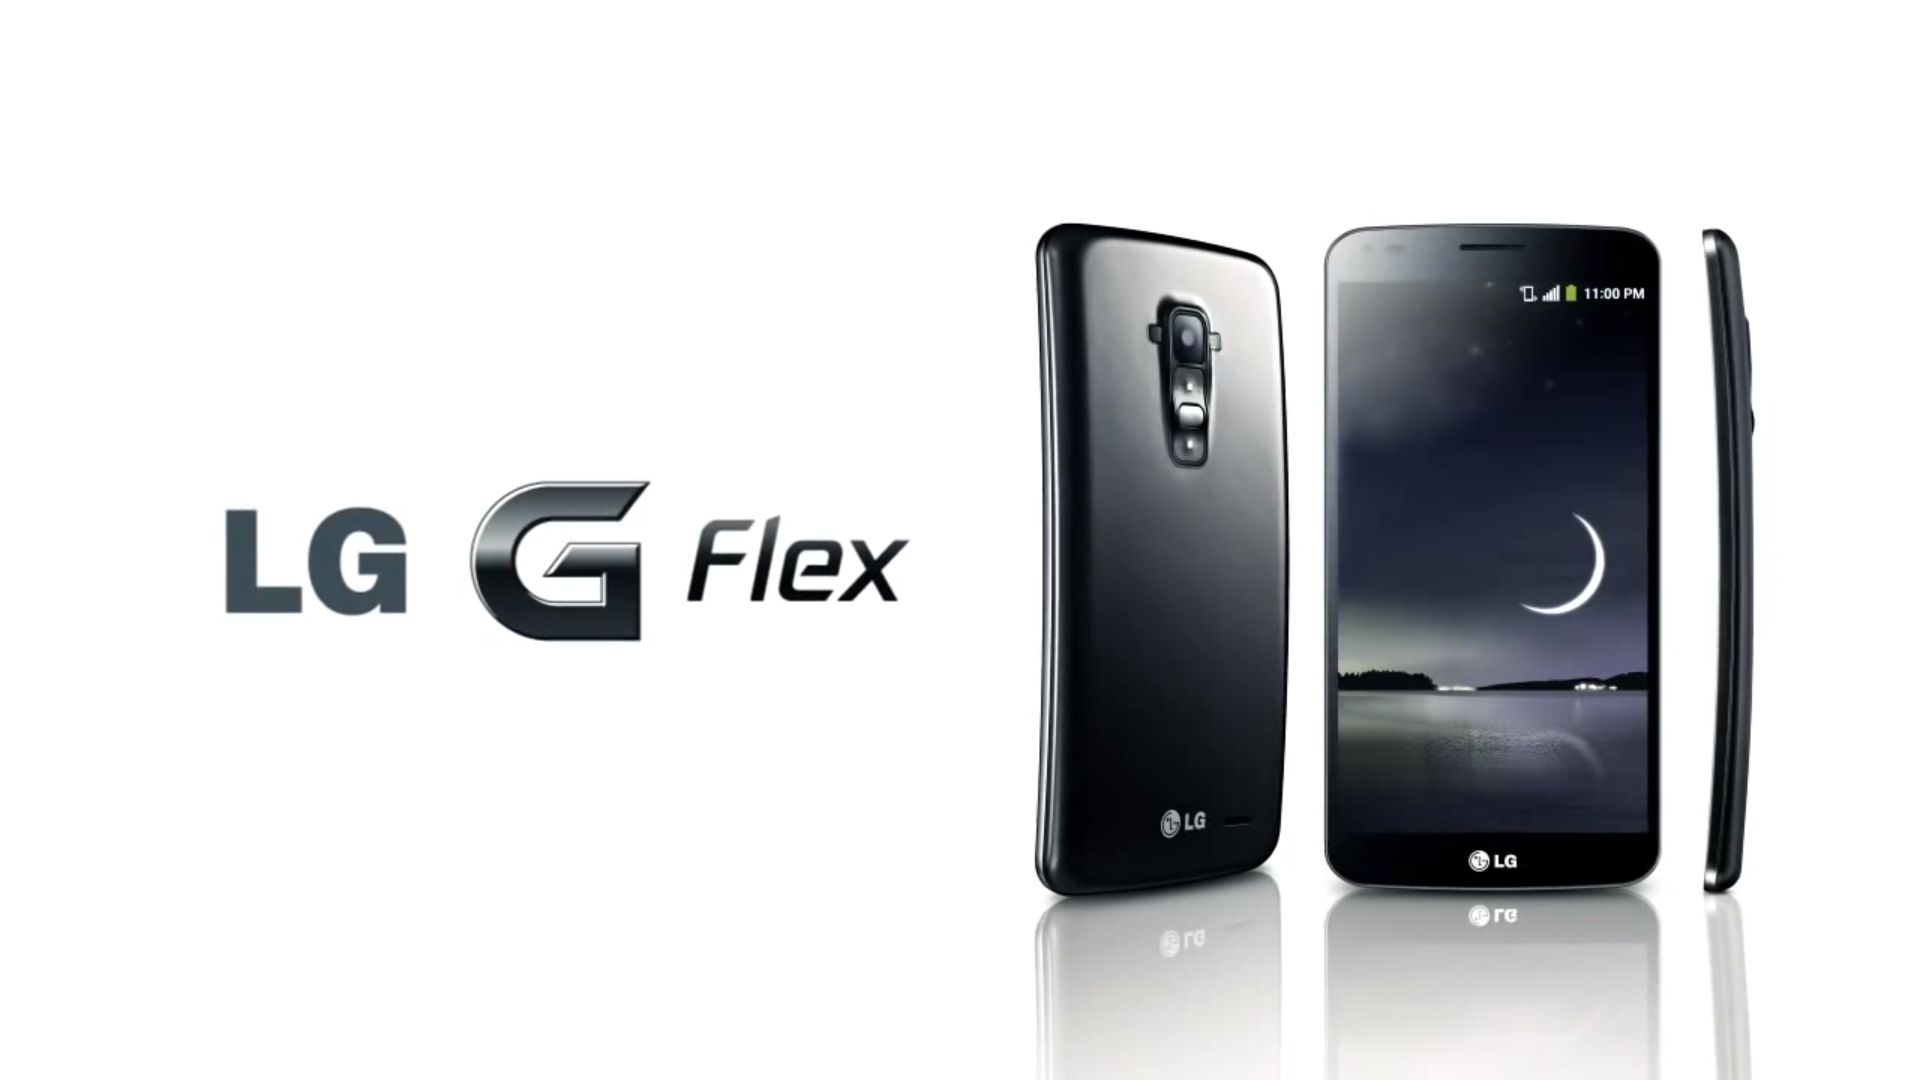 LG G Flex Won't Be Upgraded to Android 5 0 Lollipop